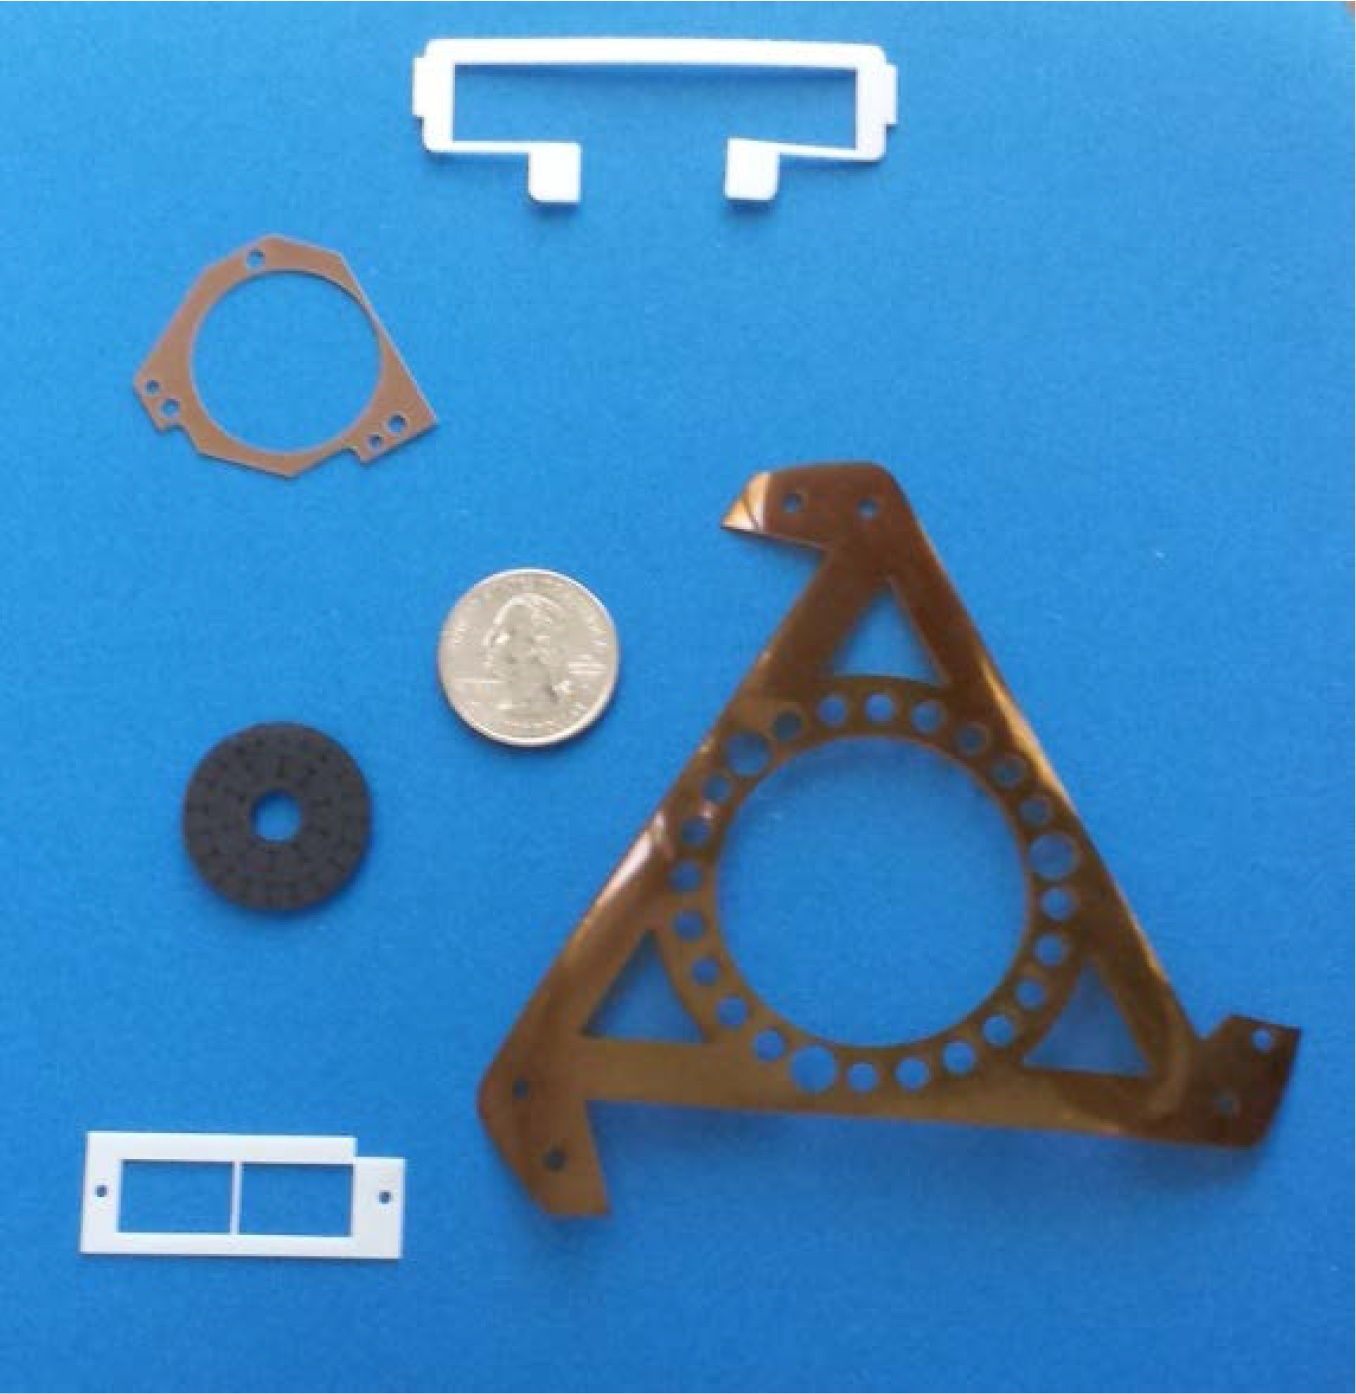 Made-in-California-manufacturer-Rache-NonMetalCuttingExamples-X1